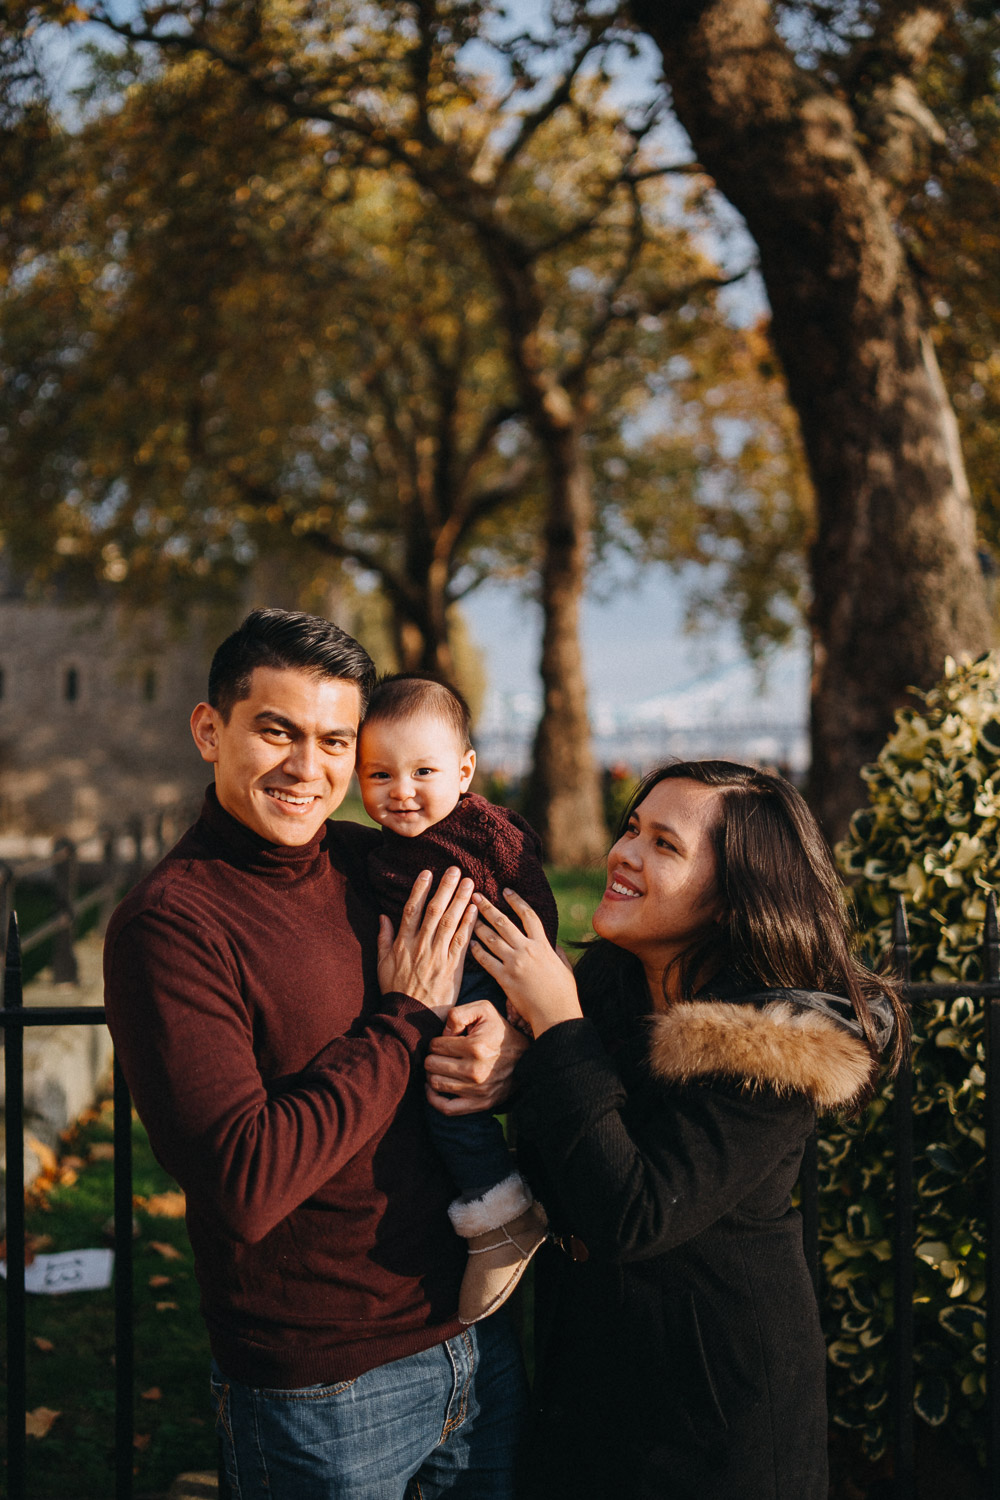 Family Portrait Photography in Tower Hill, London